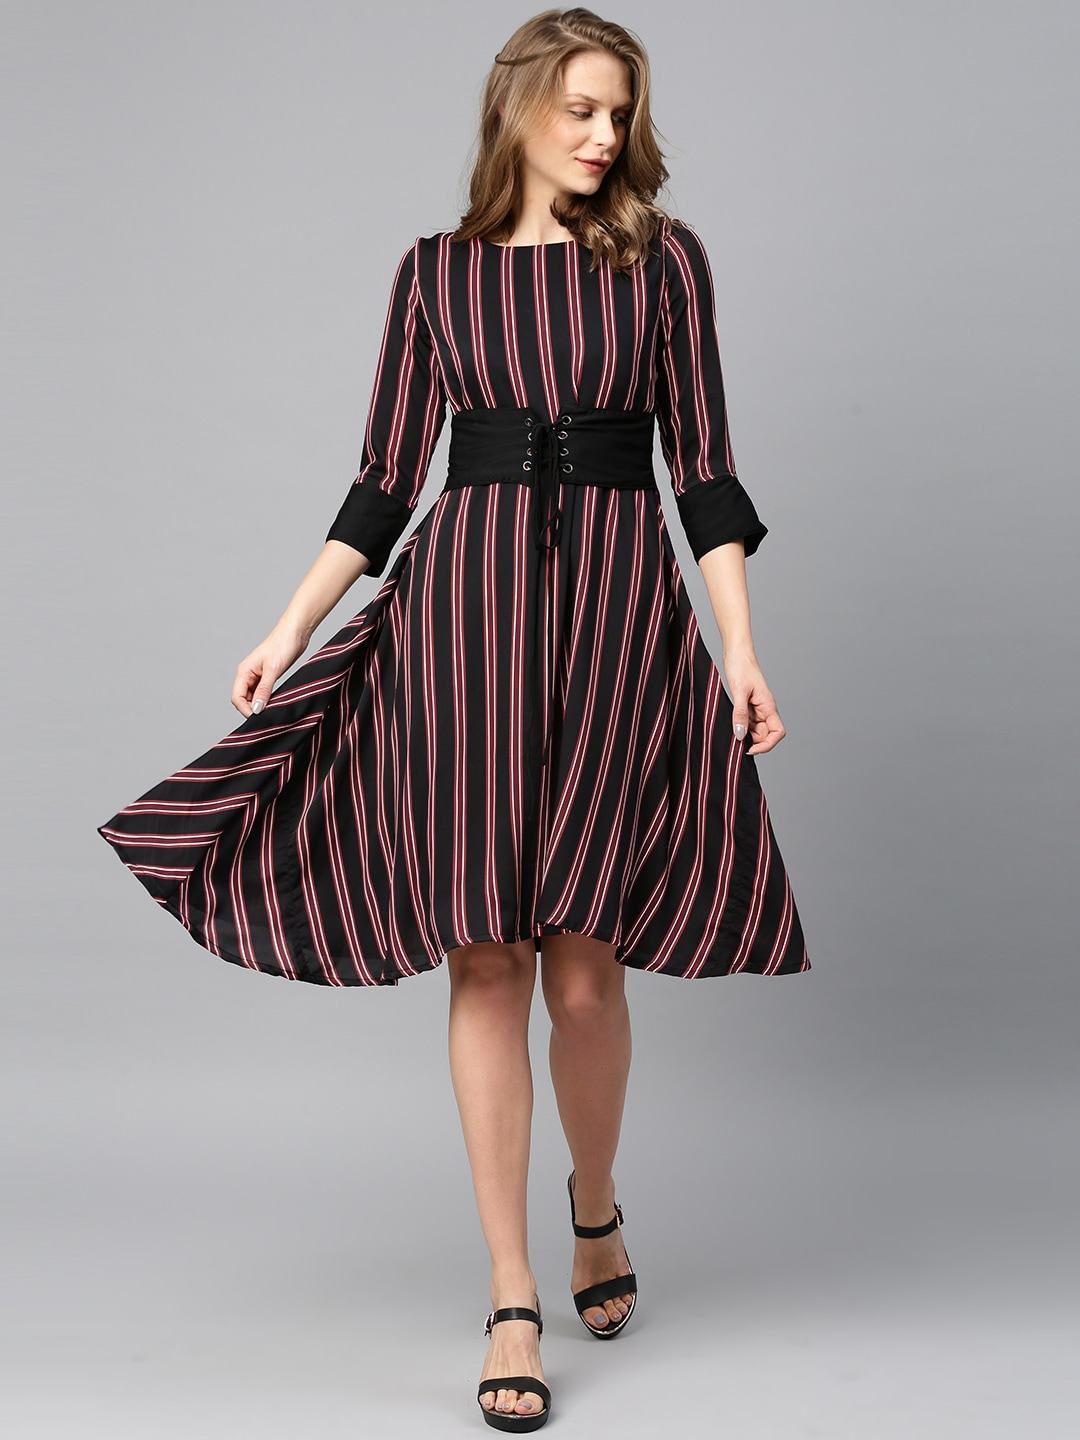 bb2acd62810 Tokyo Talkies. Rs. 2399 Rs. 959 (60% OFF). Women Striped Fit and Flare Dress